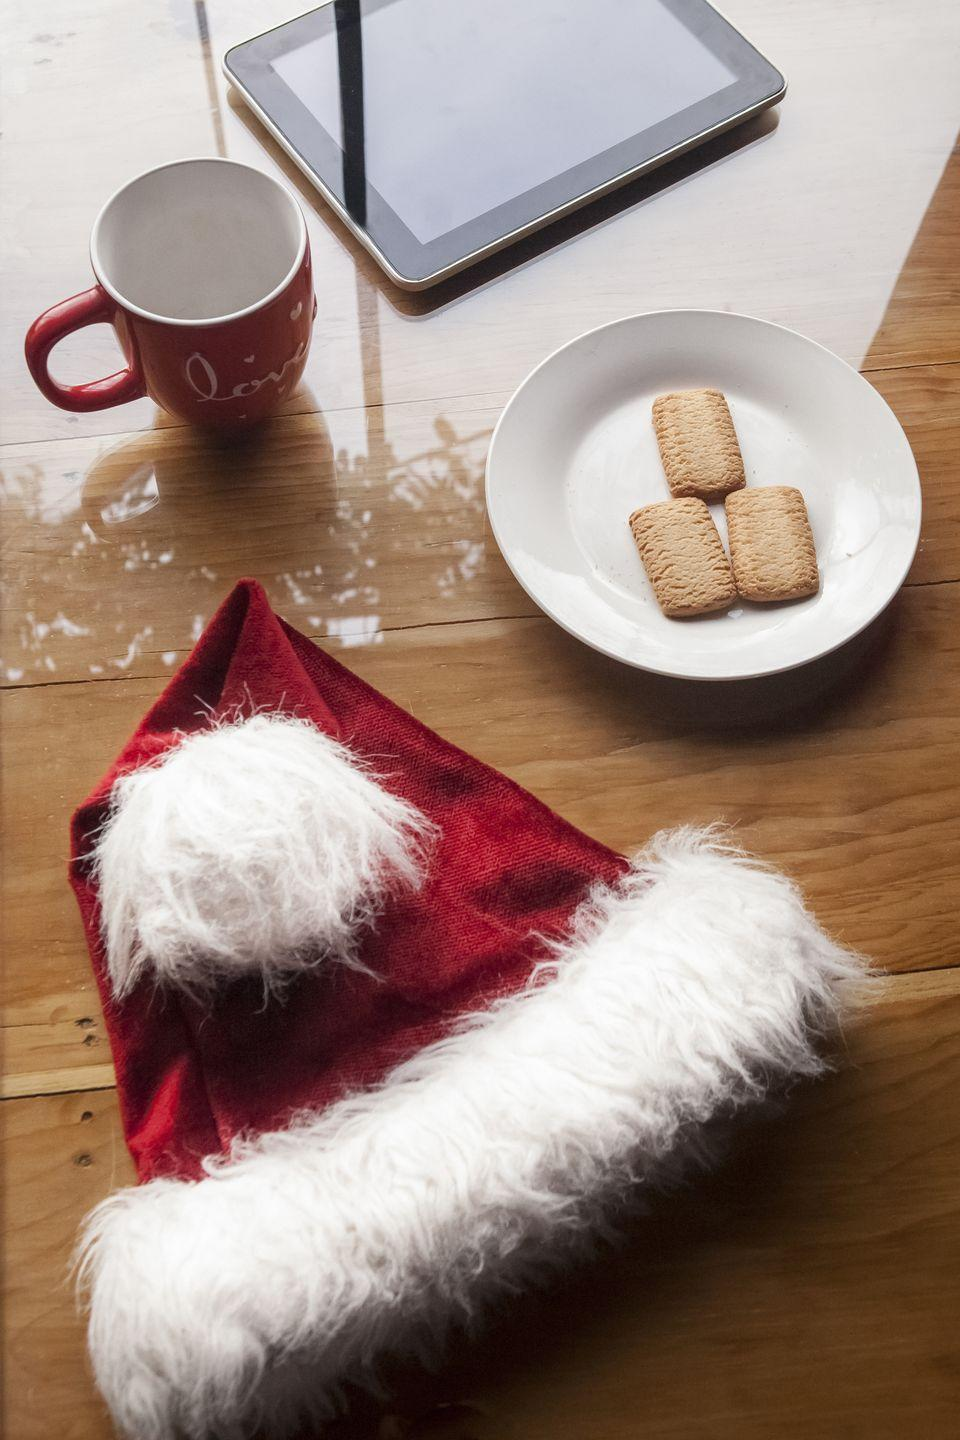 "<p>This tactile version of the Christmas scents challenge doesn't require any special equipment; just a Santa hat and your imagination. It works for very young kids, but older ones will enjoy it, too. Round up all the furry caps (stockings work, too!) in your house for some all-ages fun.</p><p> <em><a href=""https://www.everydayhealth.com/healthy-living/healthy-home/fun-christmas-games-everyone-can-play/"" rel=""nofollow noopener"" target=""_blank"" data-ylk=""slk:Get the tutorial at Everyday Health »"" class=""link rapid-noclick-resp"">Get the tutorial at Everyday Health »</a></em></p>"